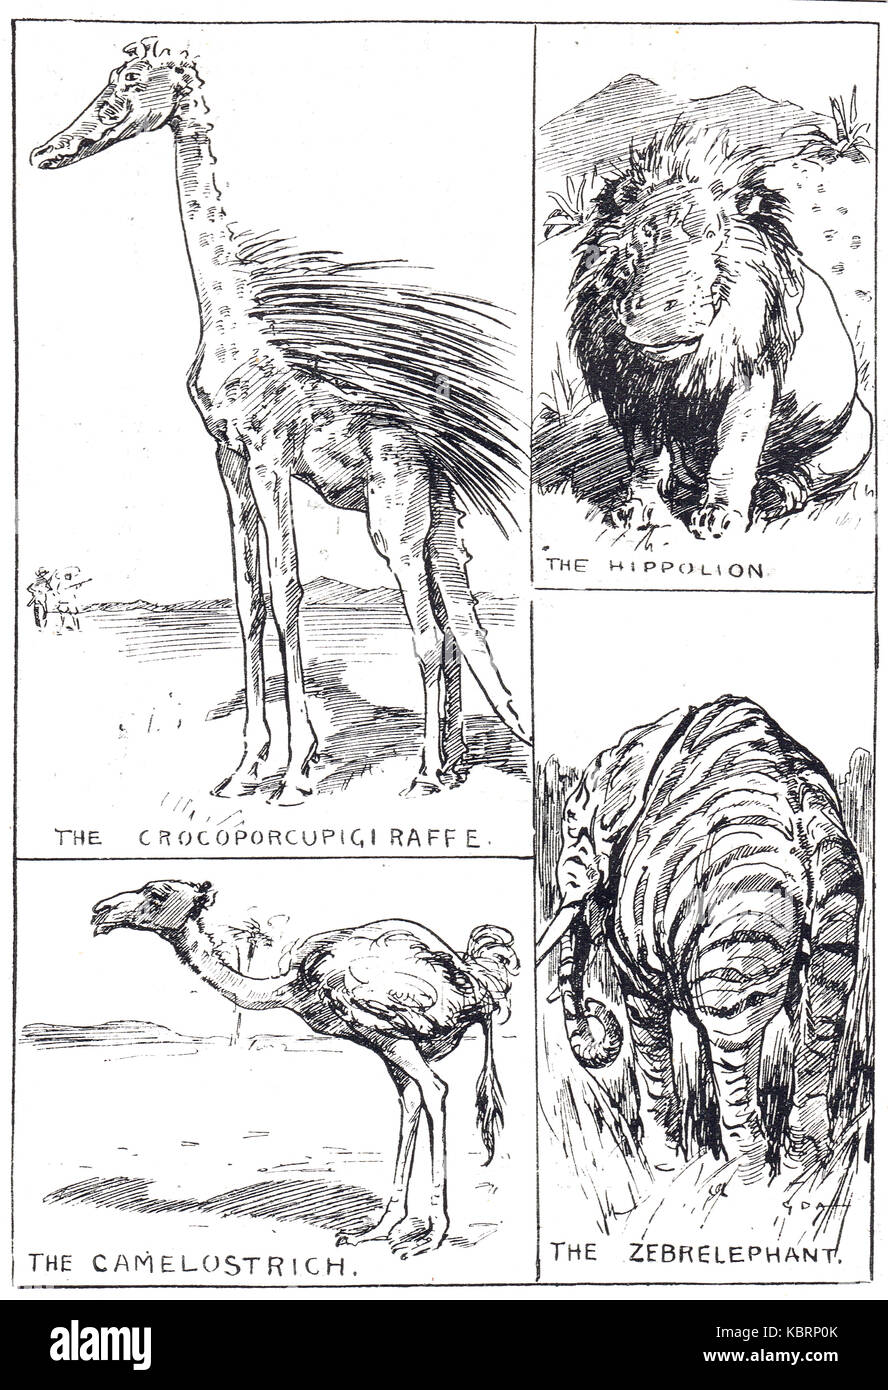 Fantasy creatures, Hippolion, Camelostrich, Zebrelephant, & Crocoporcupigiraffe. Punch cartoon of 1909 - Stock Image